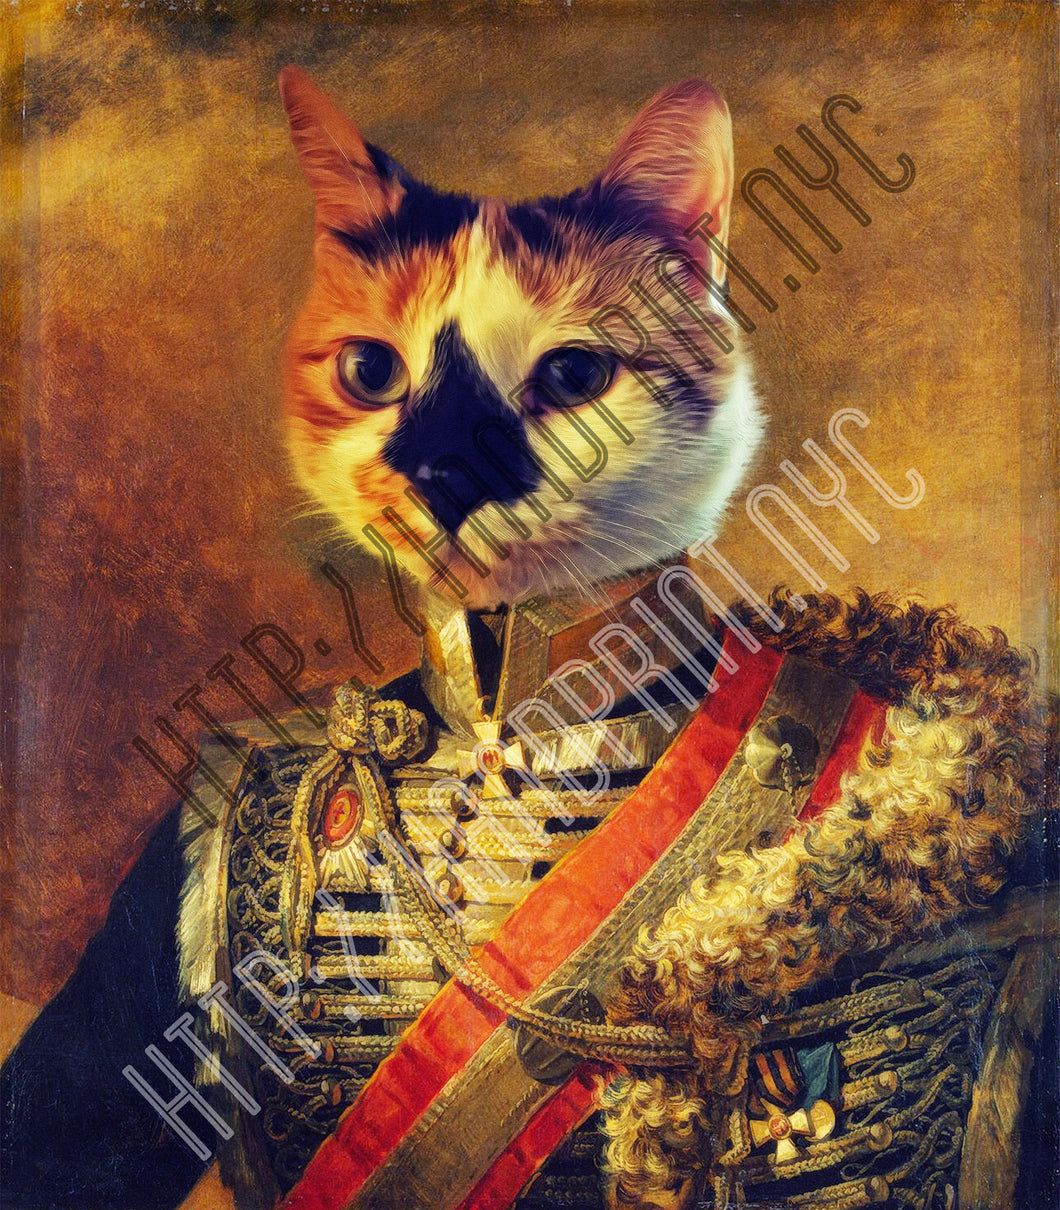 Cat Portrait Print - 5x7 or 8x10